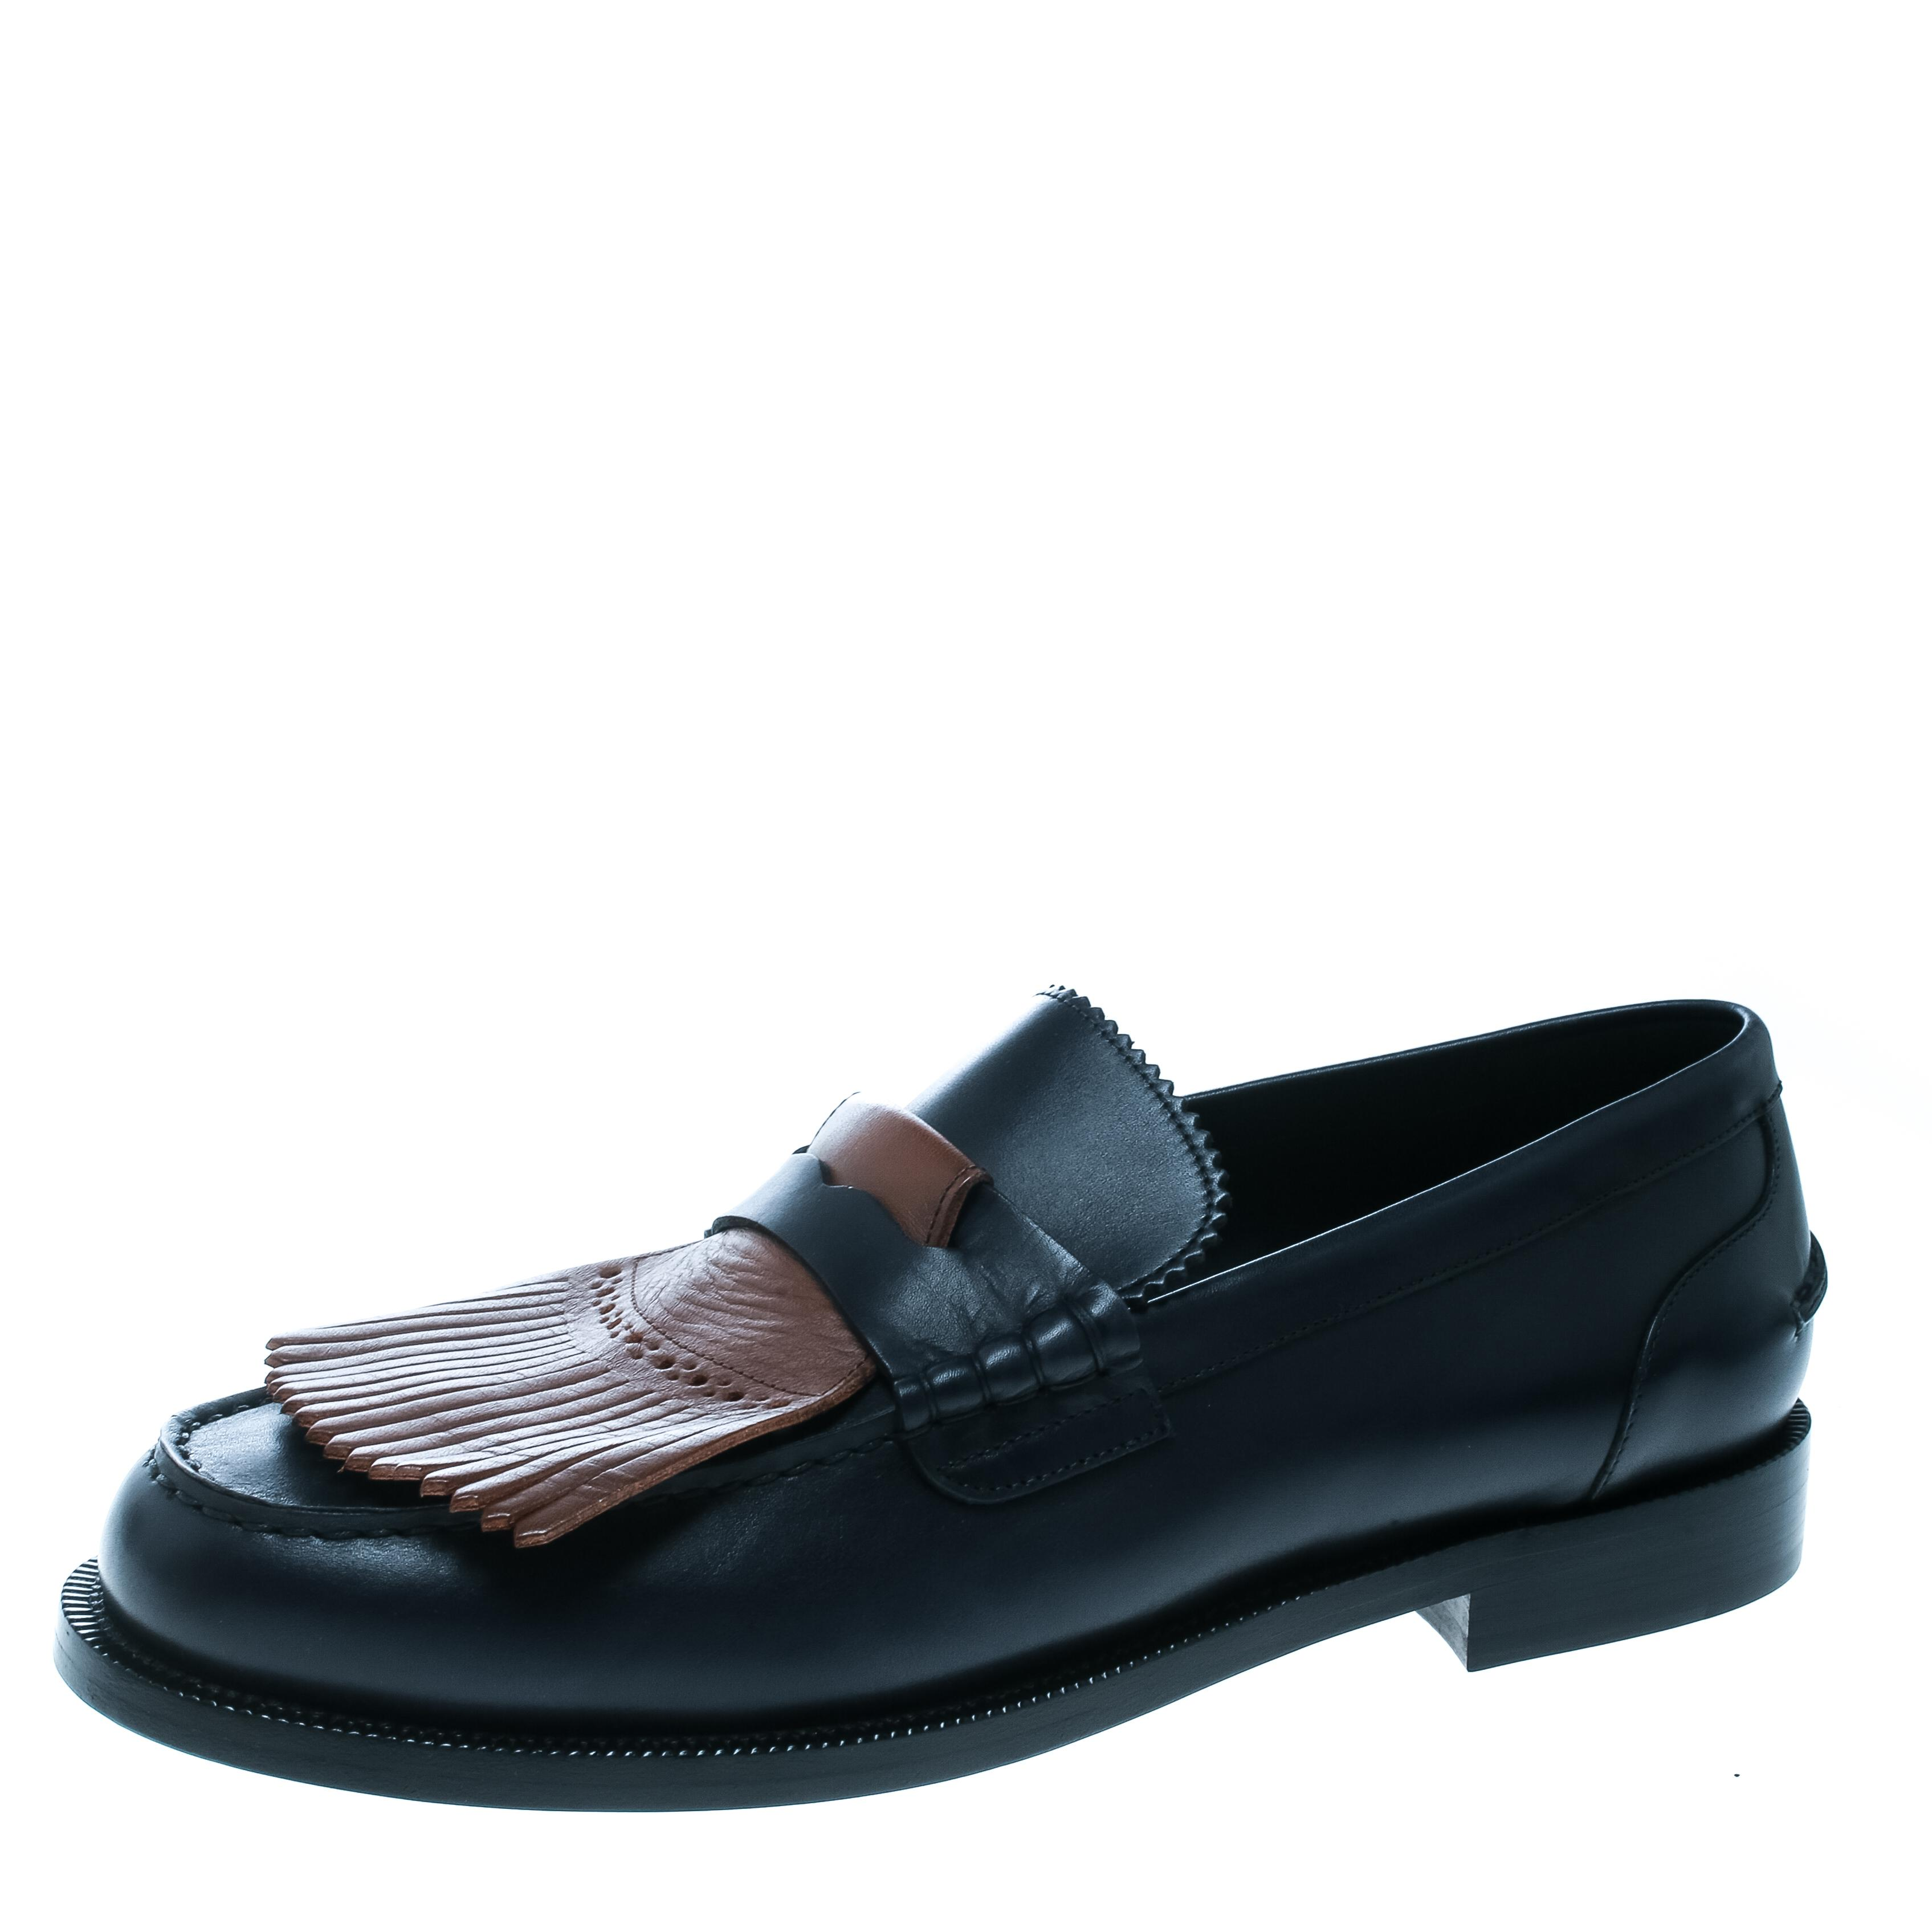 d47e49df6a0 Burberry. Men s Dark Blue Leather Bedmoore Fringe Detail Penny Loafers ...